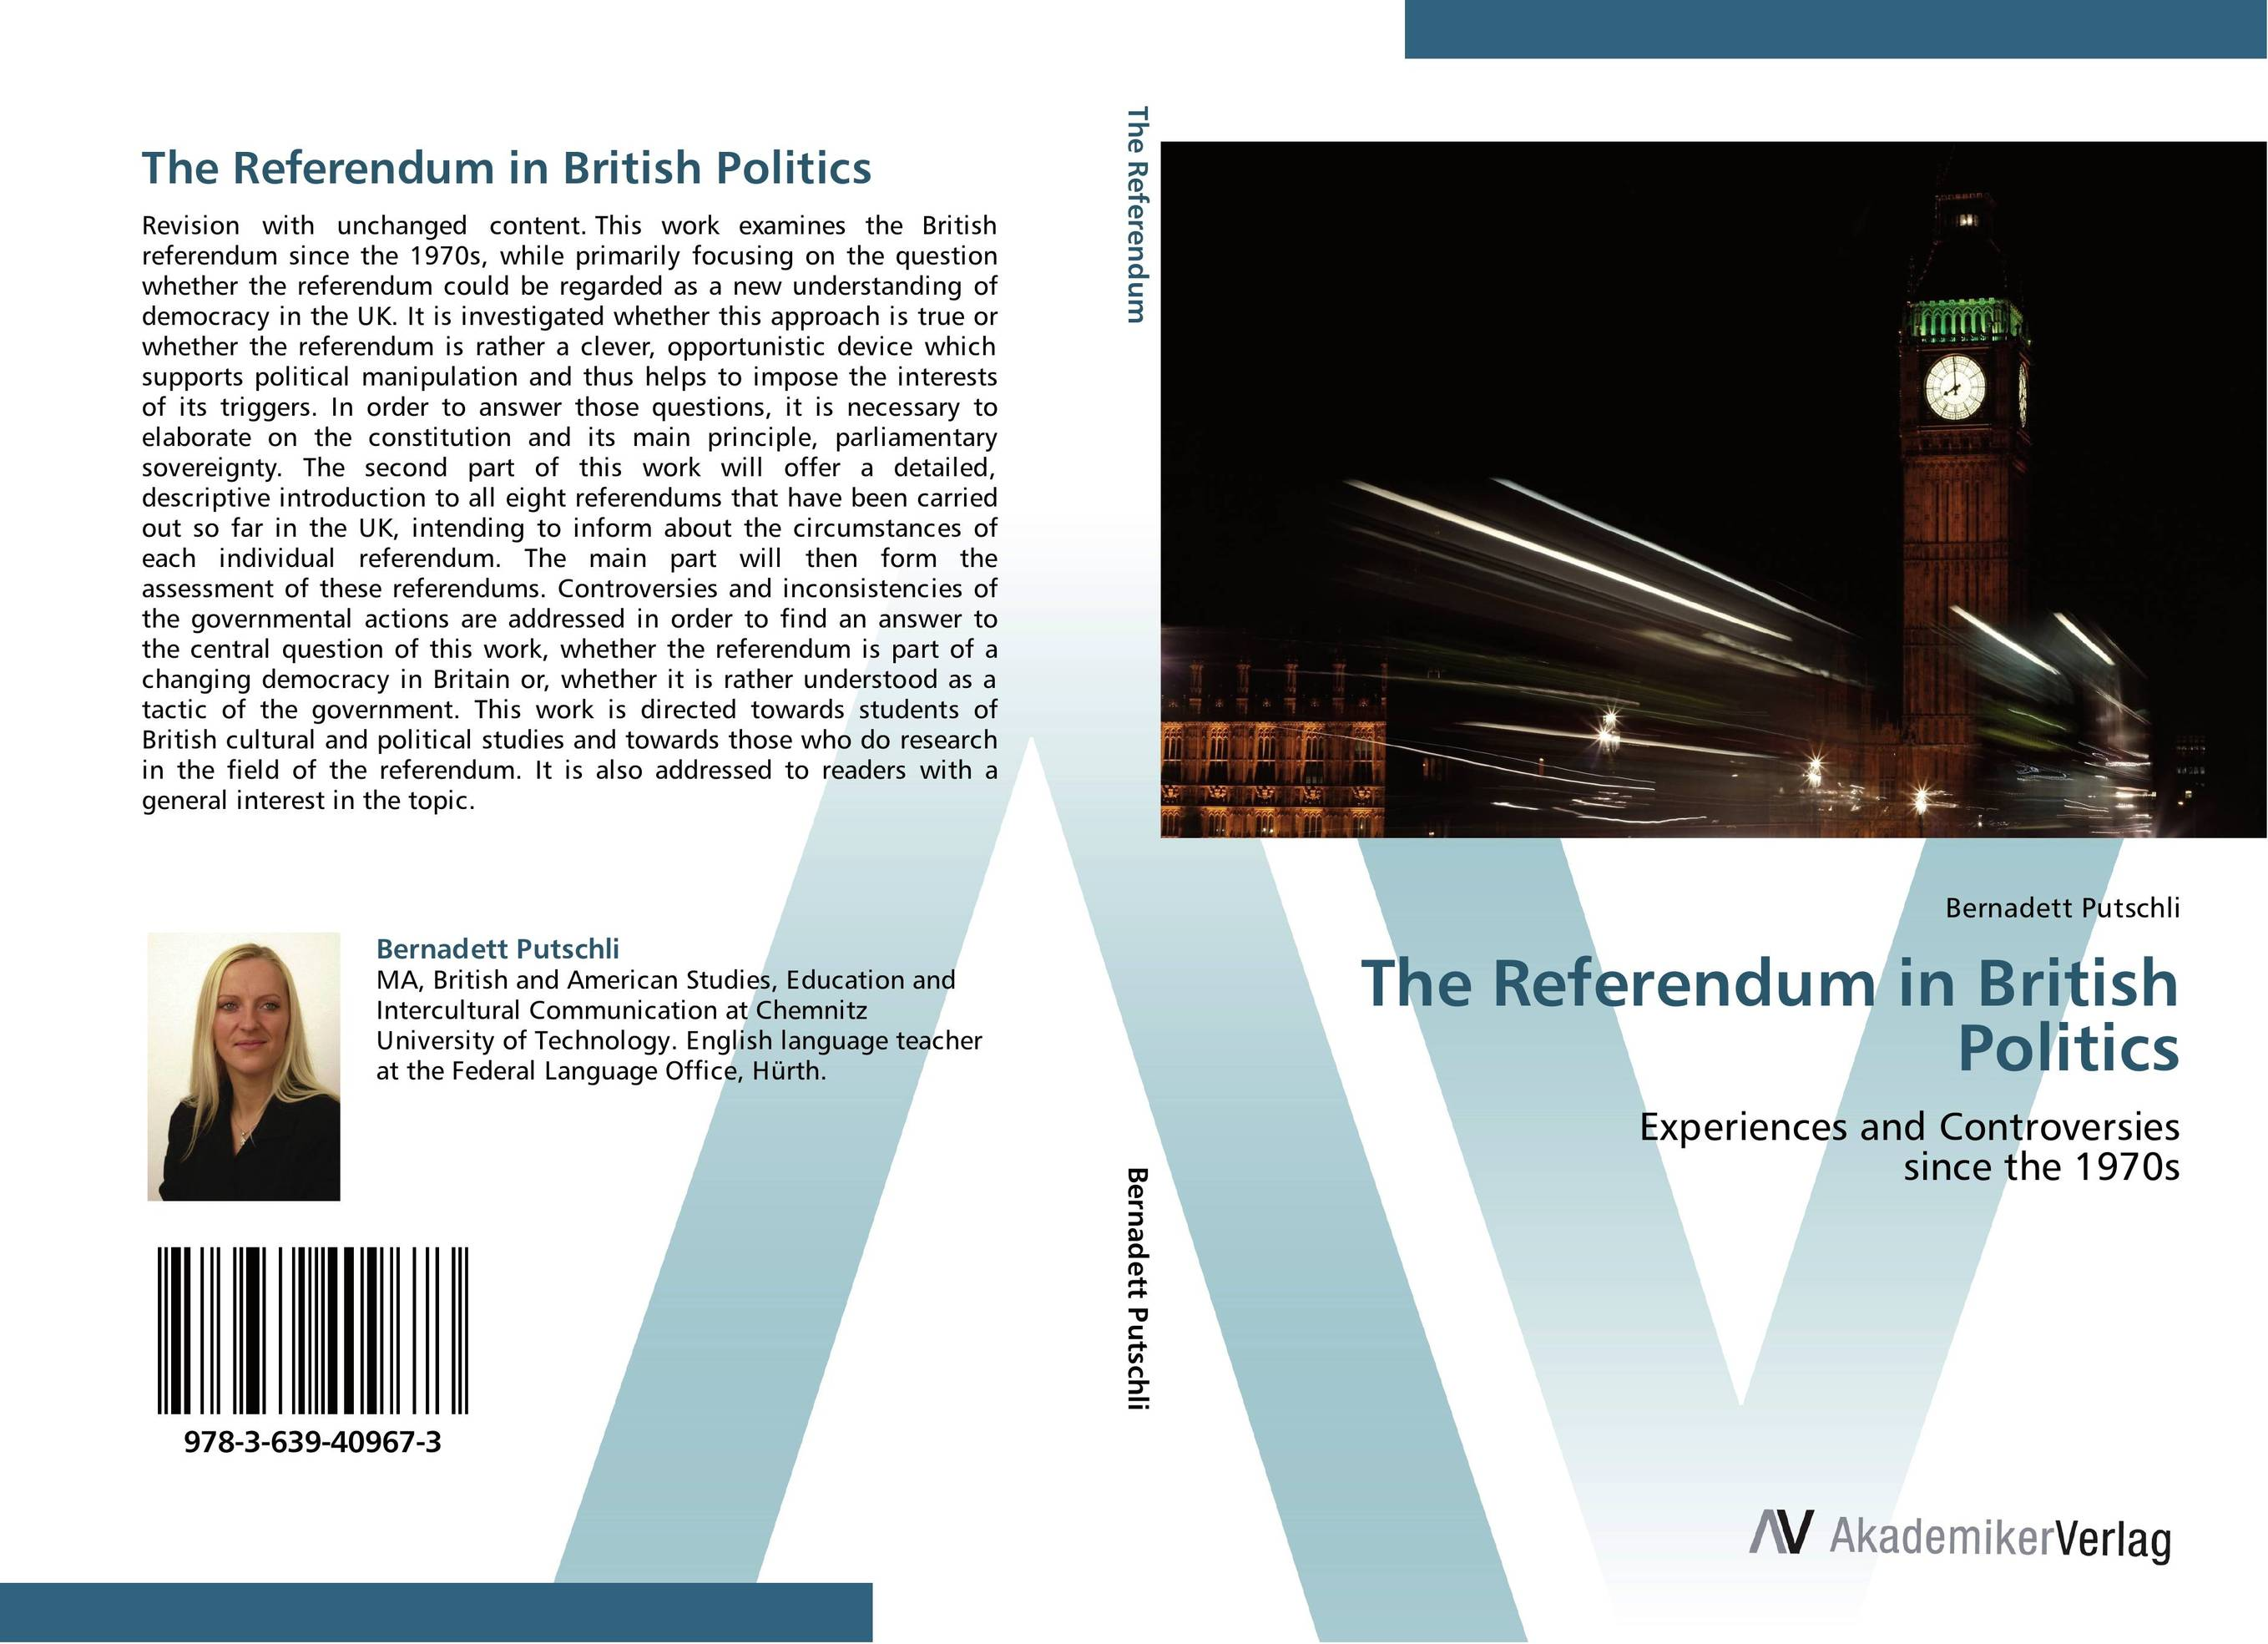 The Referendum in British Politics strict democracy burning the bridges in politics